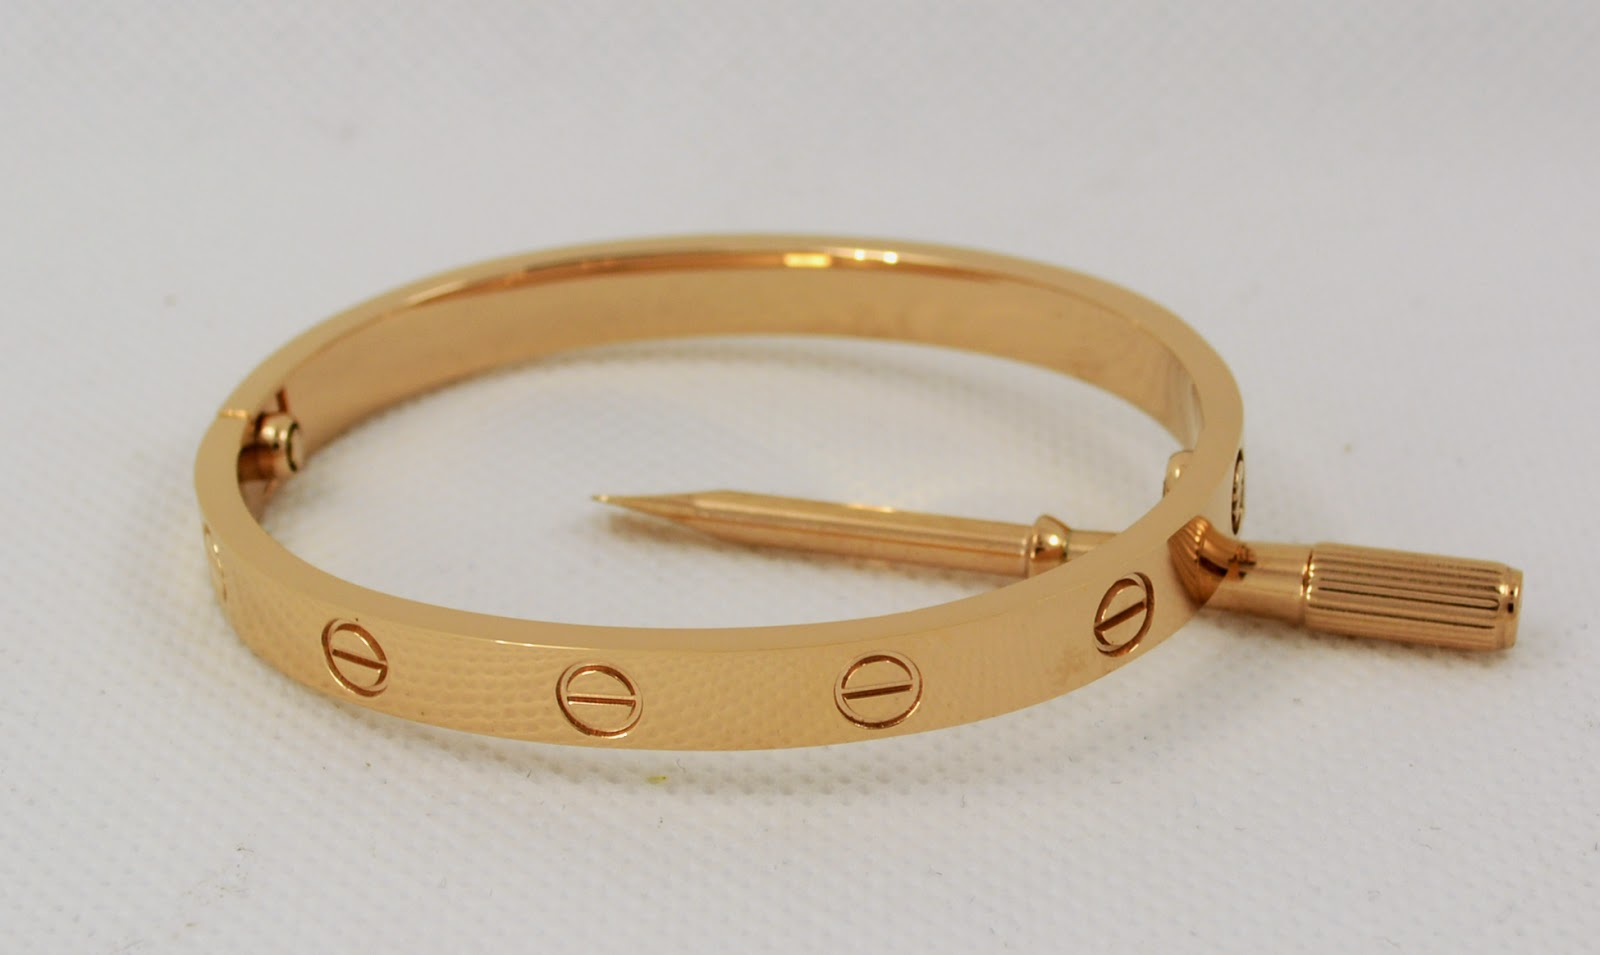 Replica cartier love bracelet with only 49 fashion iphone cases